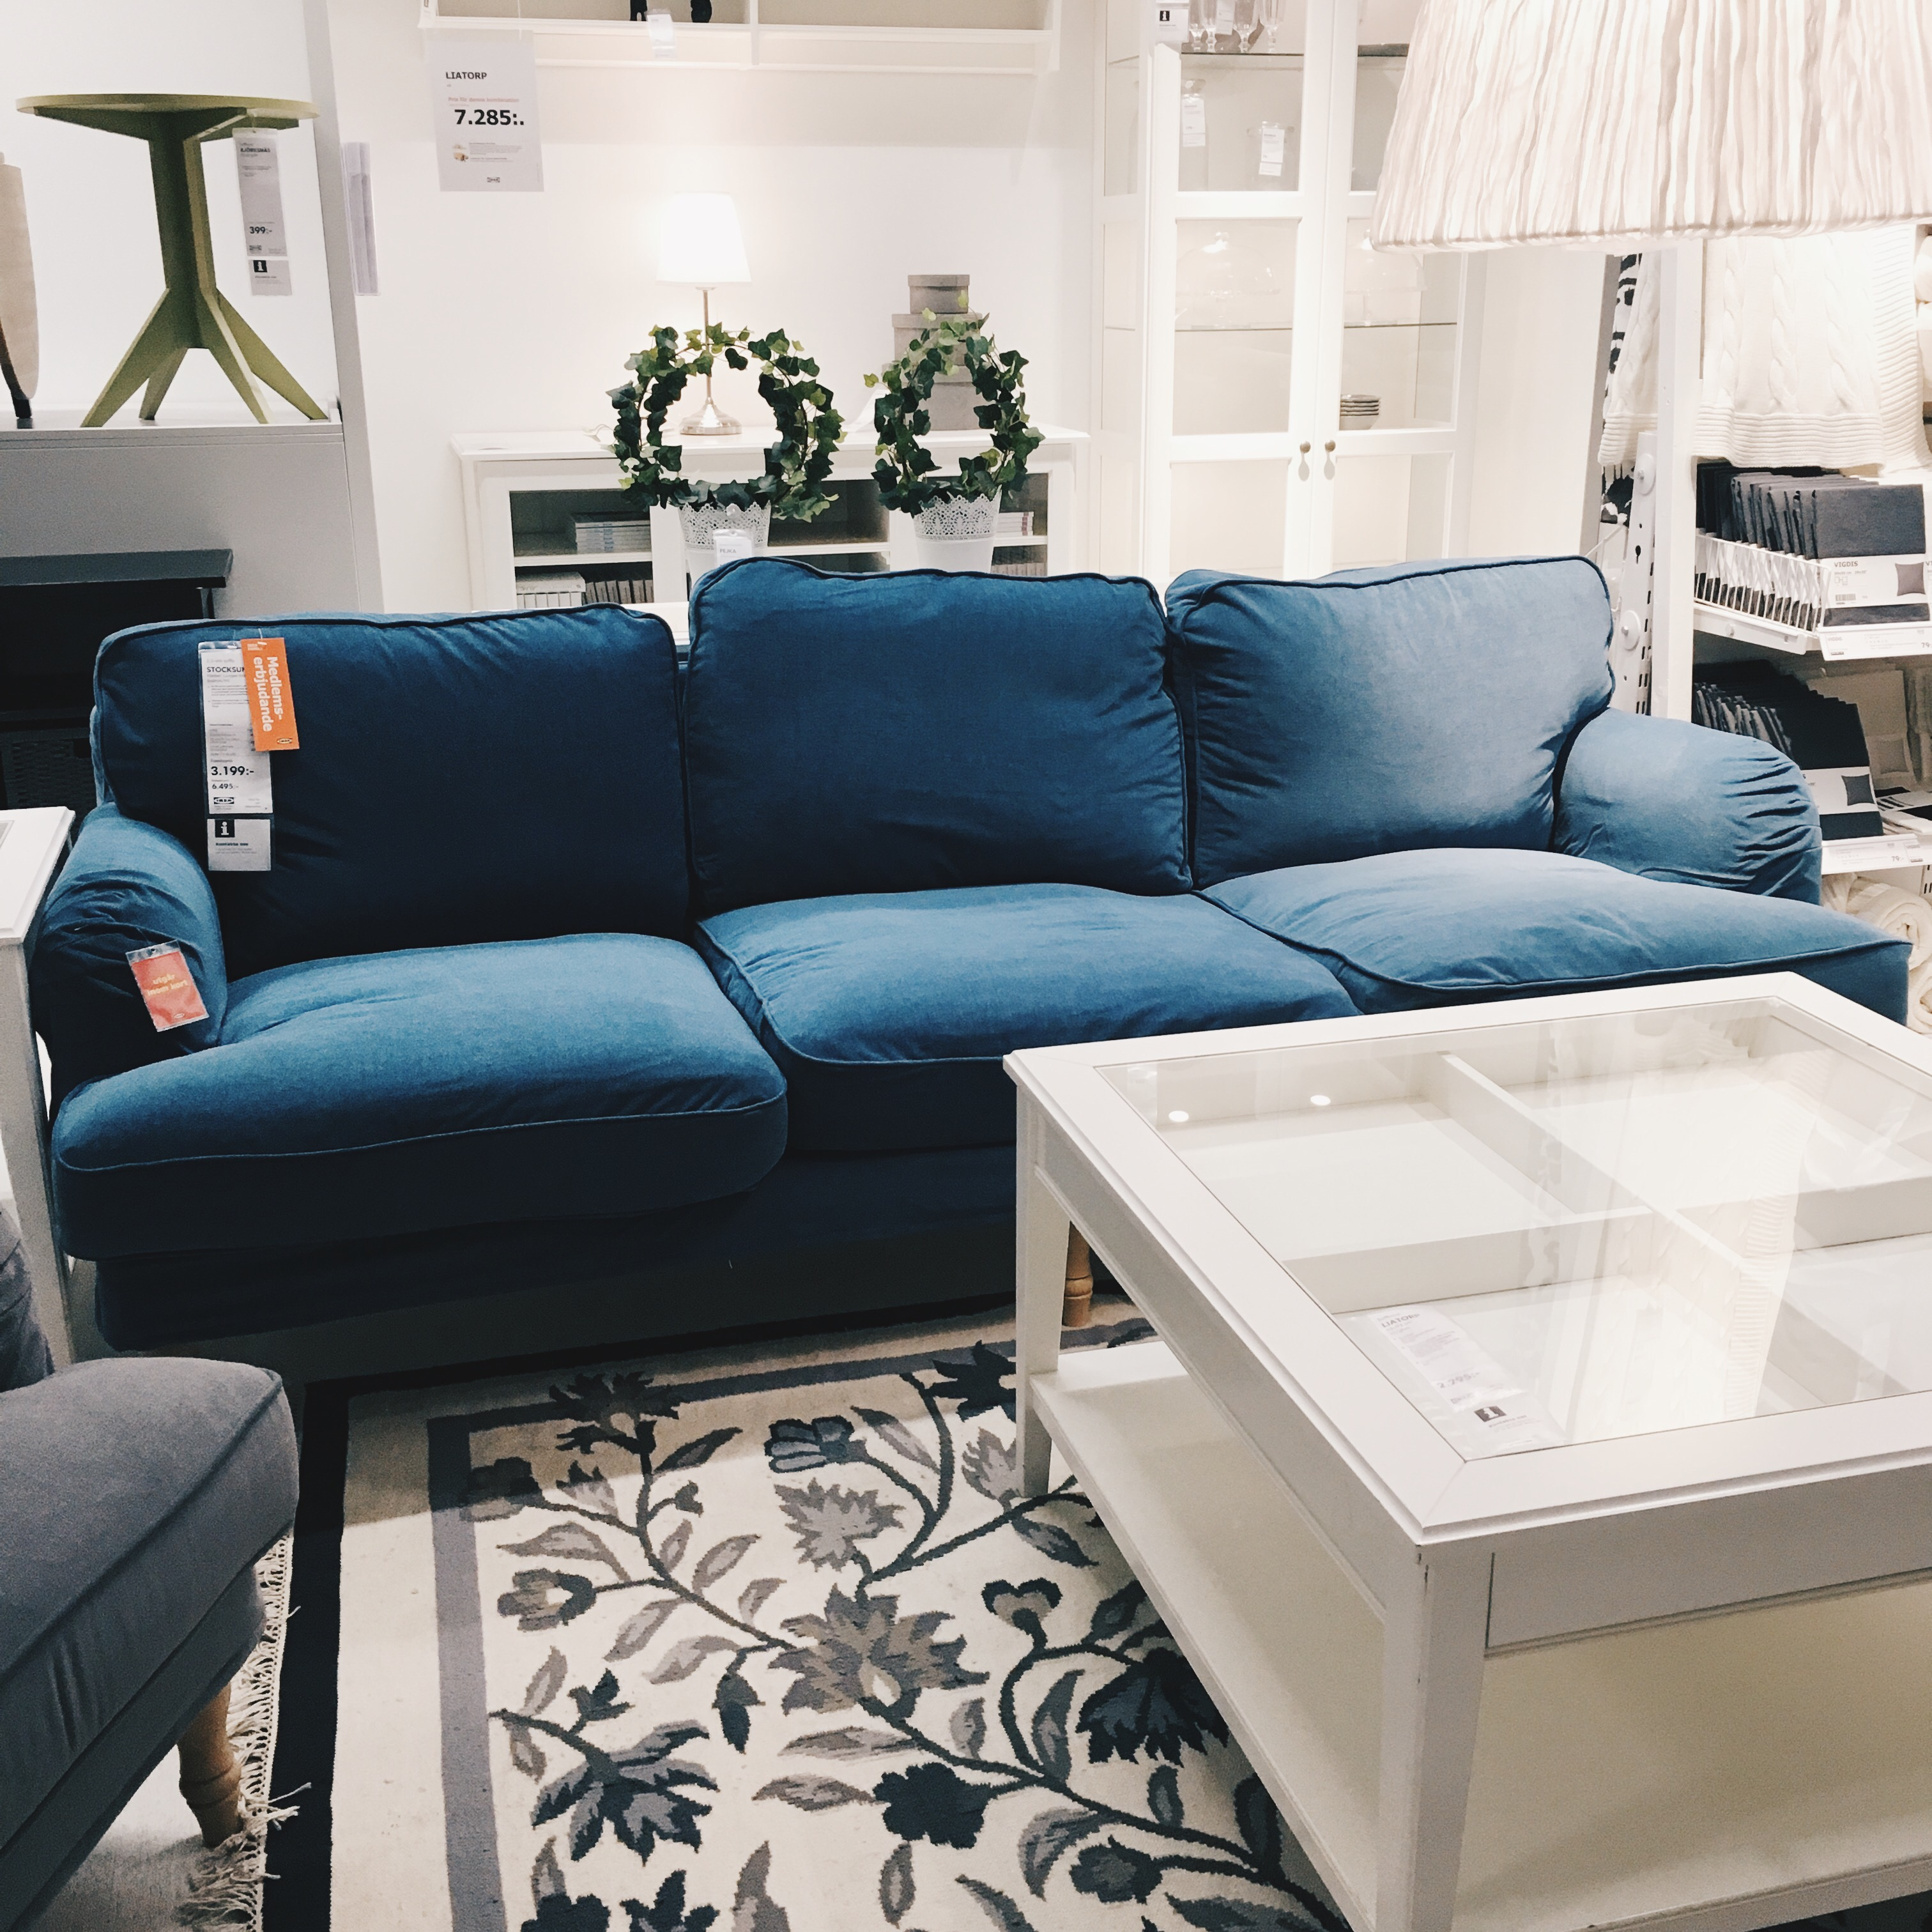 bentley recliner sofa loveseat and armchair set modern black compact leather sectional stocksund ljungen blue | baci living room